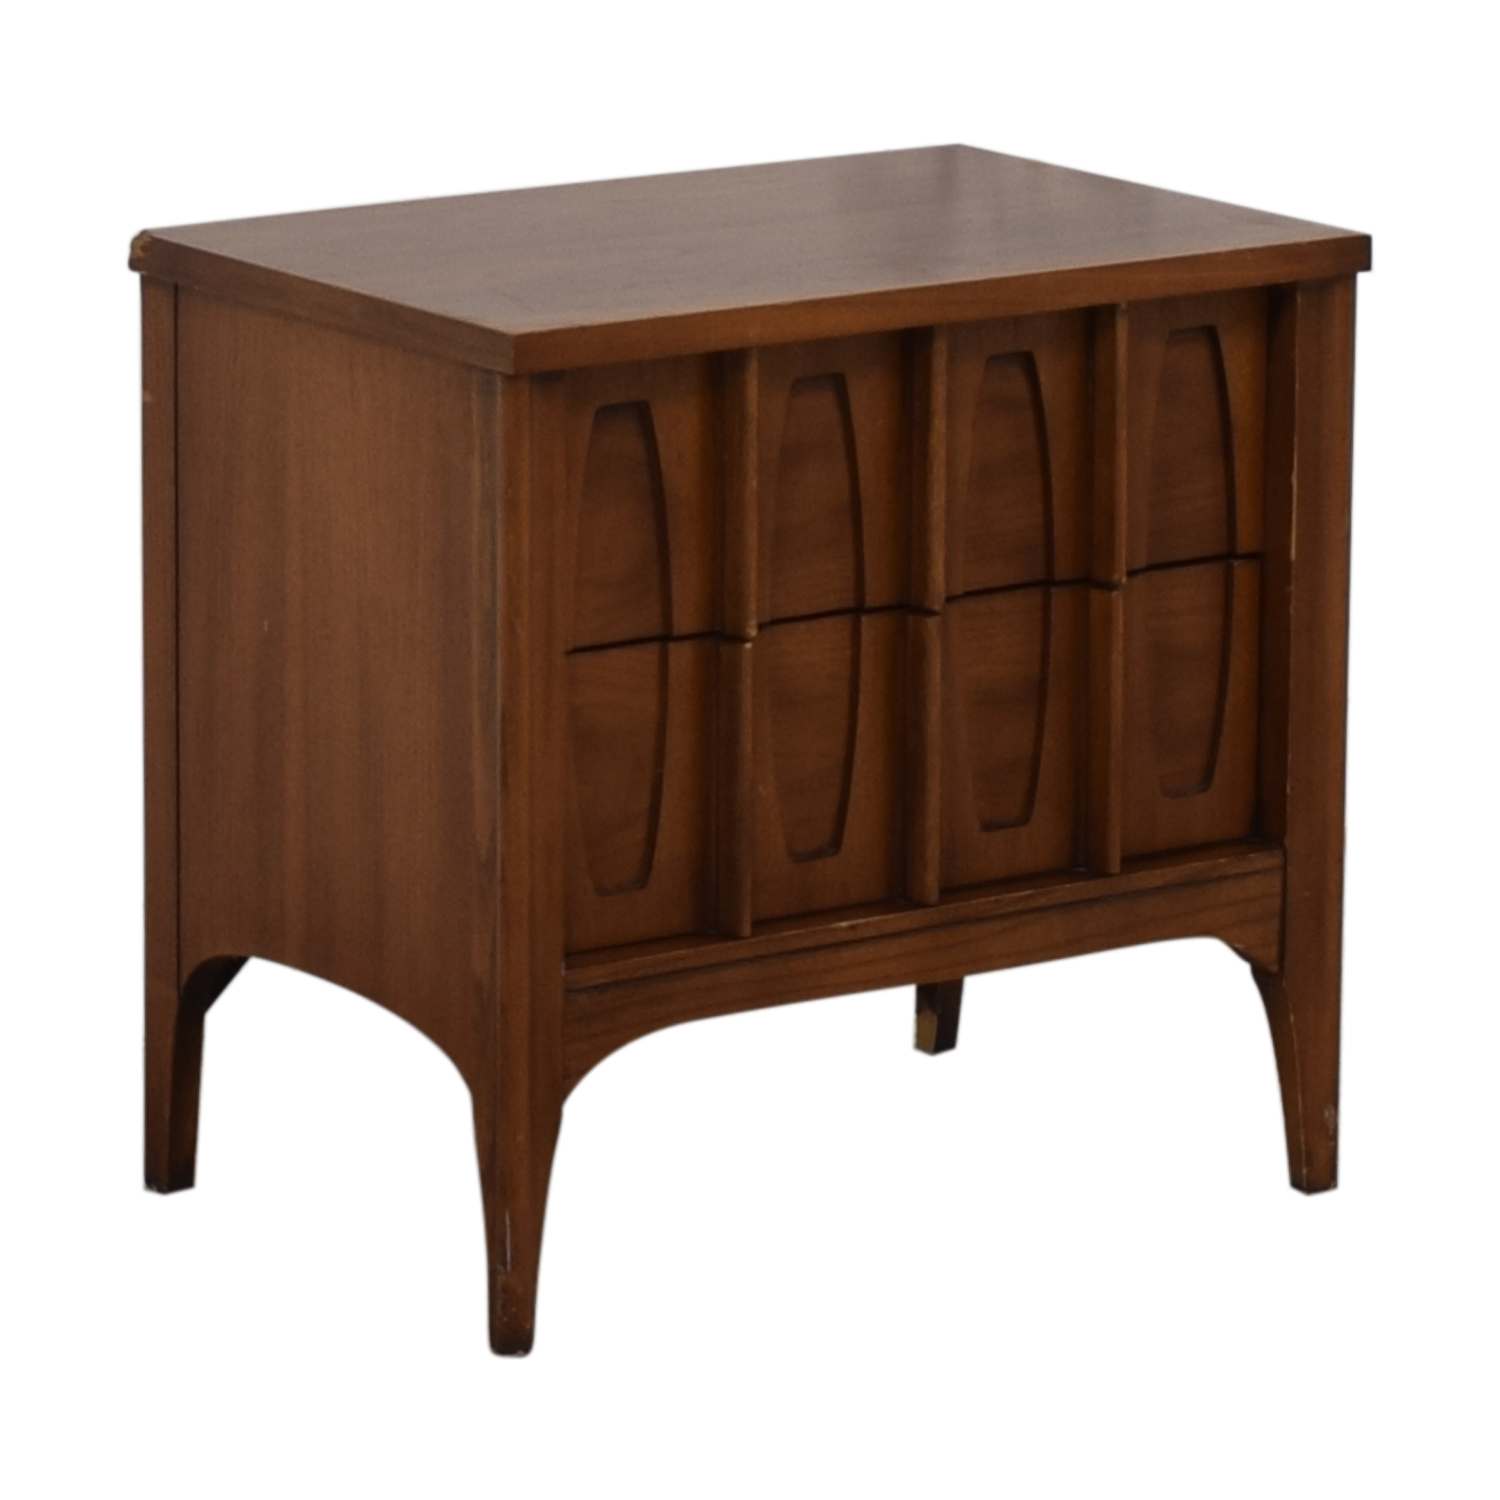 Kent Coffey Kent Coffey Mid Century Night Stand nj